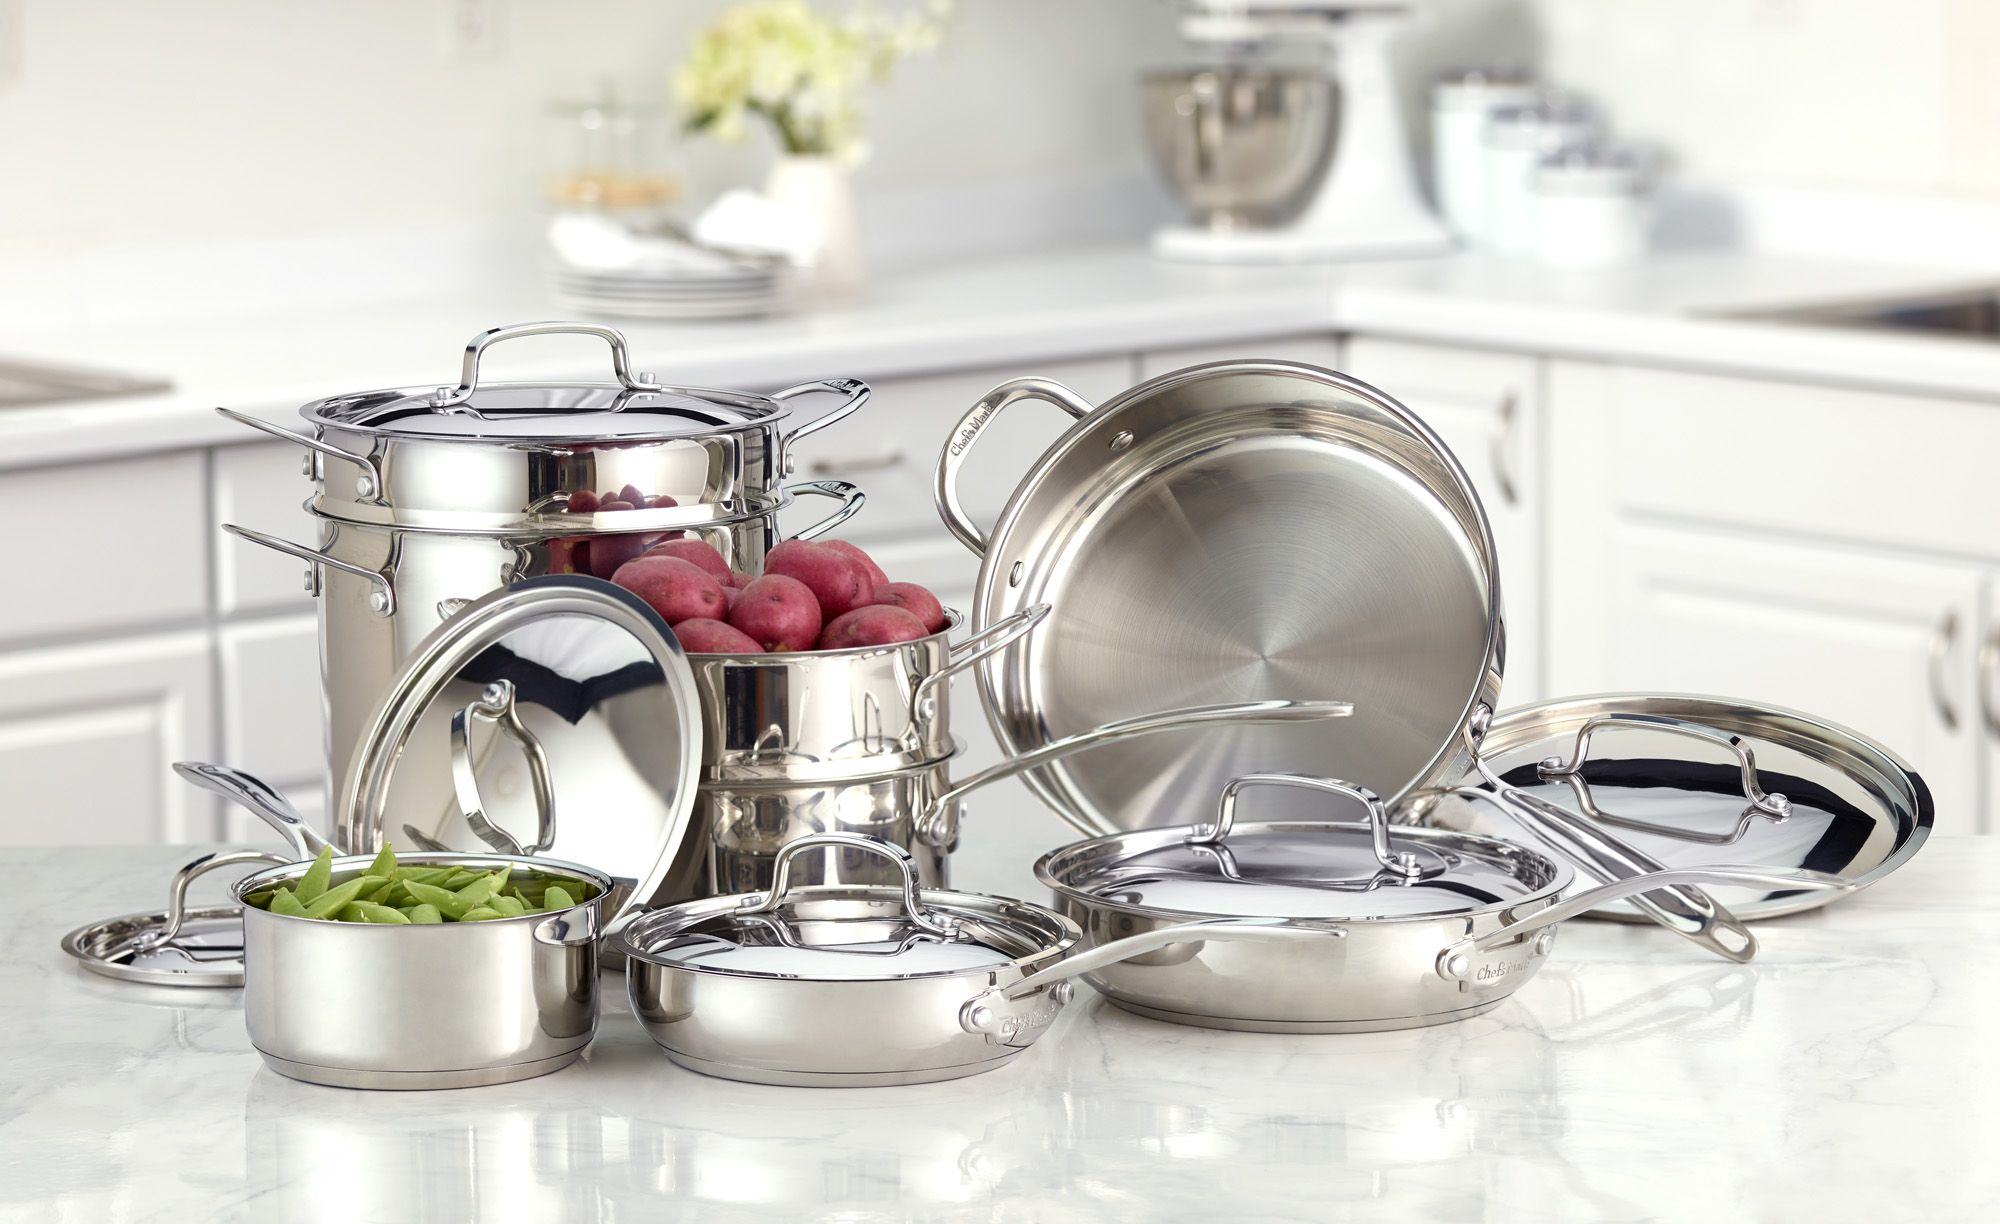 Tips on Buying Stainless Steel Cookware